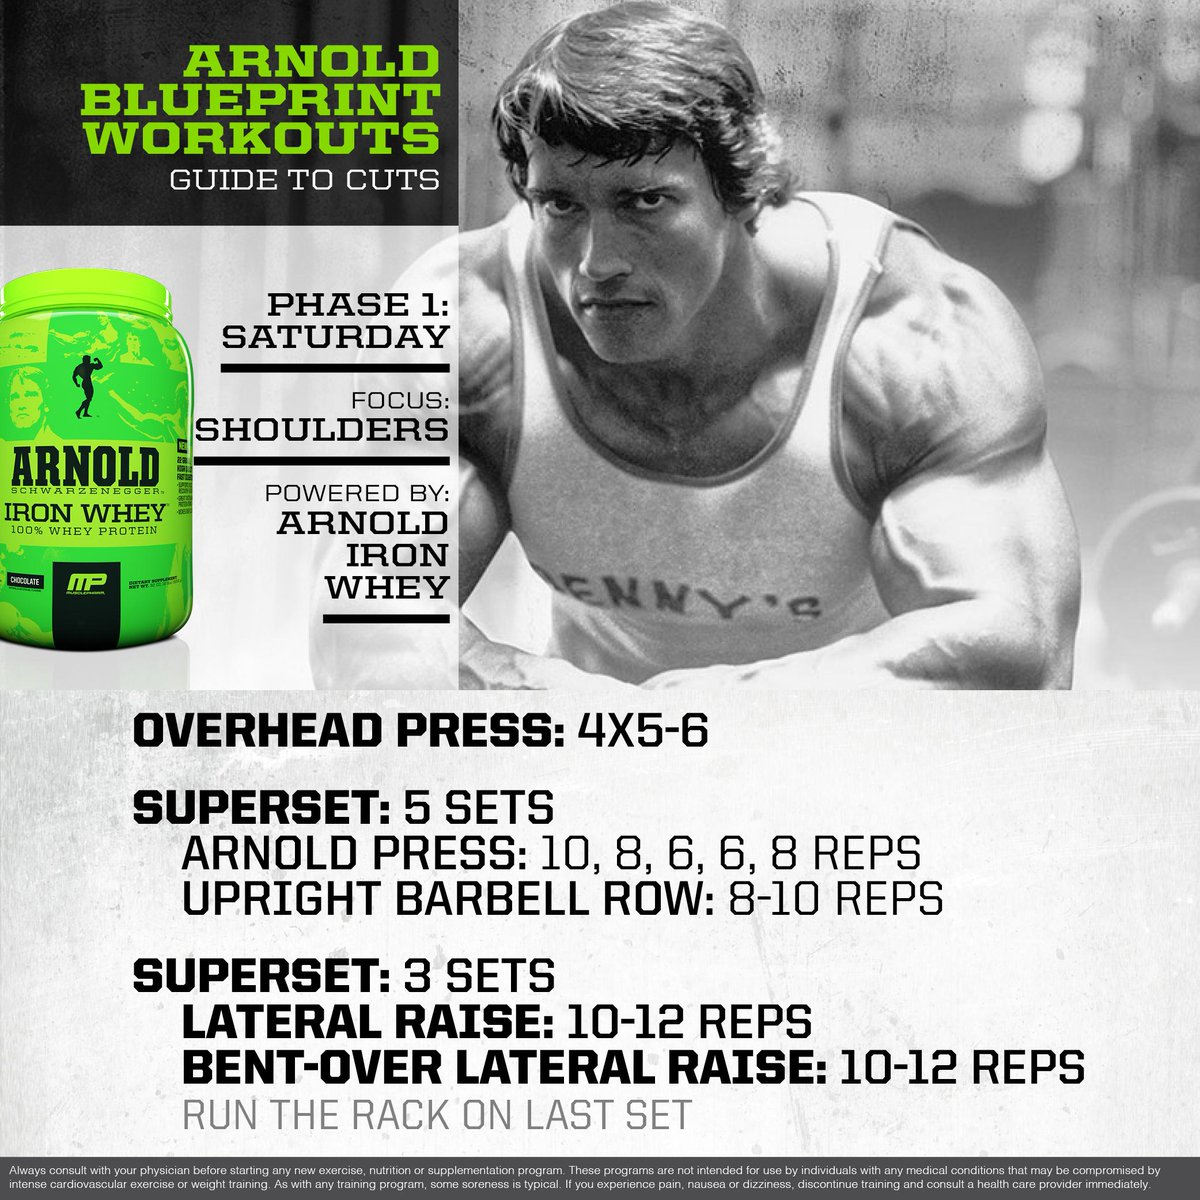 Musclepharm on twitter mp workout of the day arnold musclepharm on twitter mp workout of the day arnold schwarzenegger blueprint to cut shoulder workout powered by ironwhey httptay2cnc8je1 malvernweather Choice Image